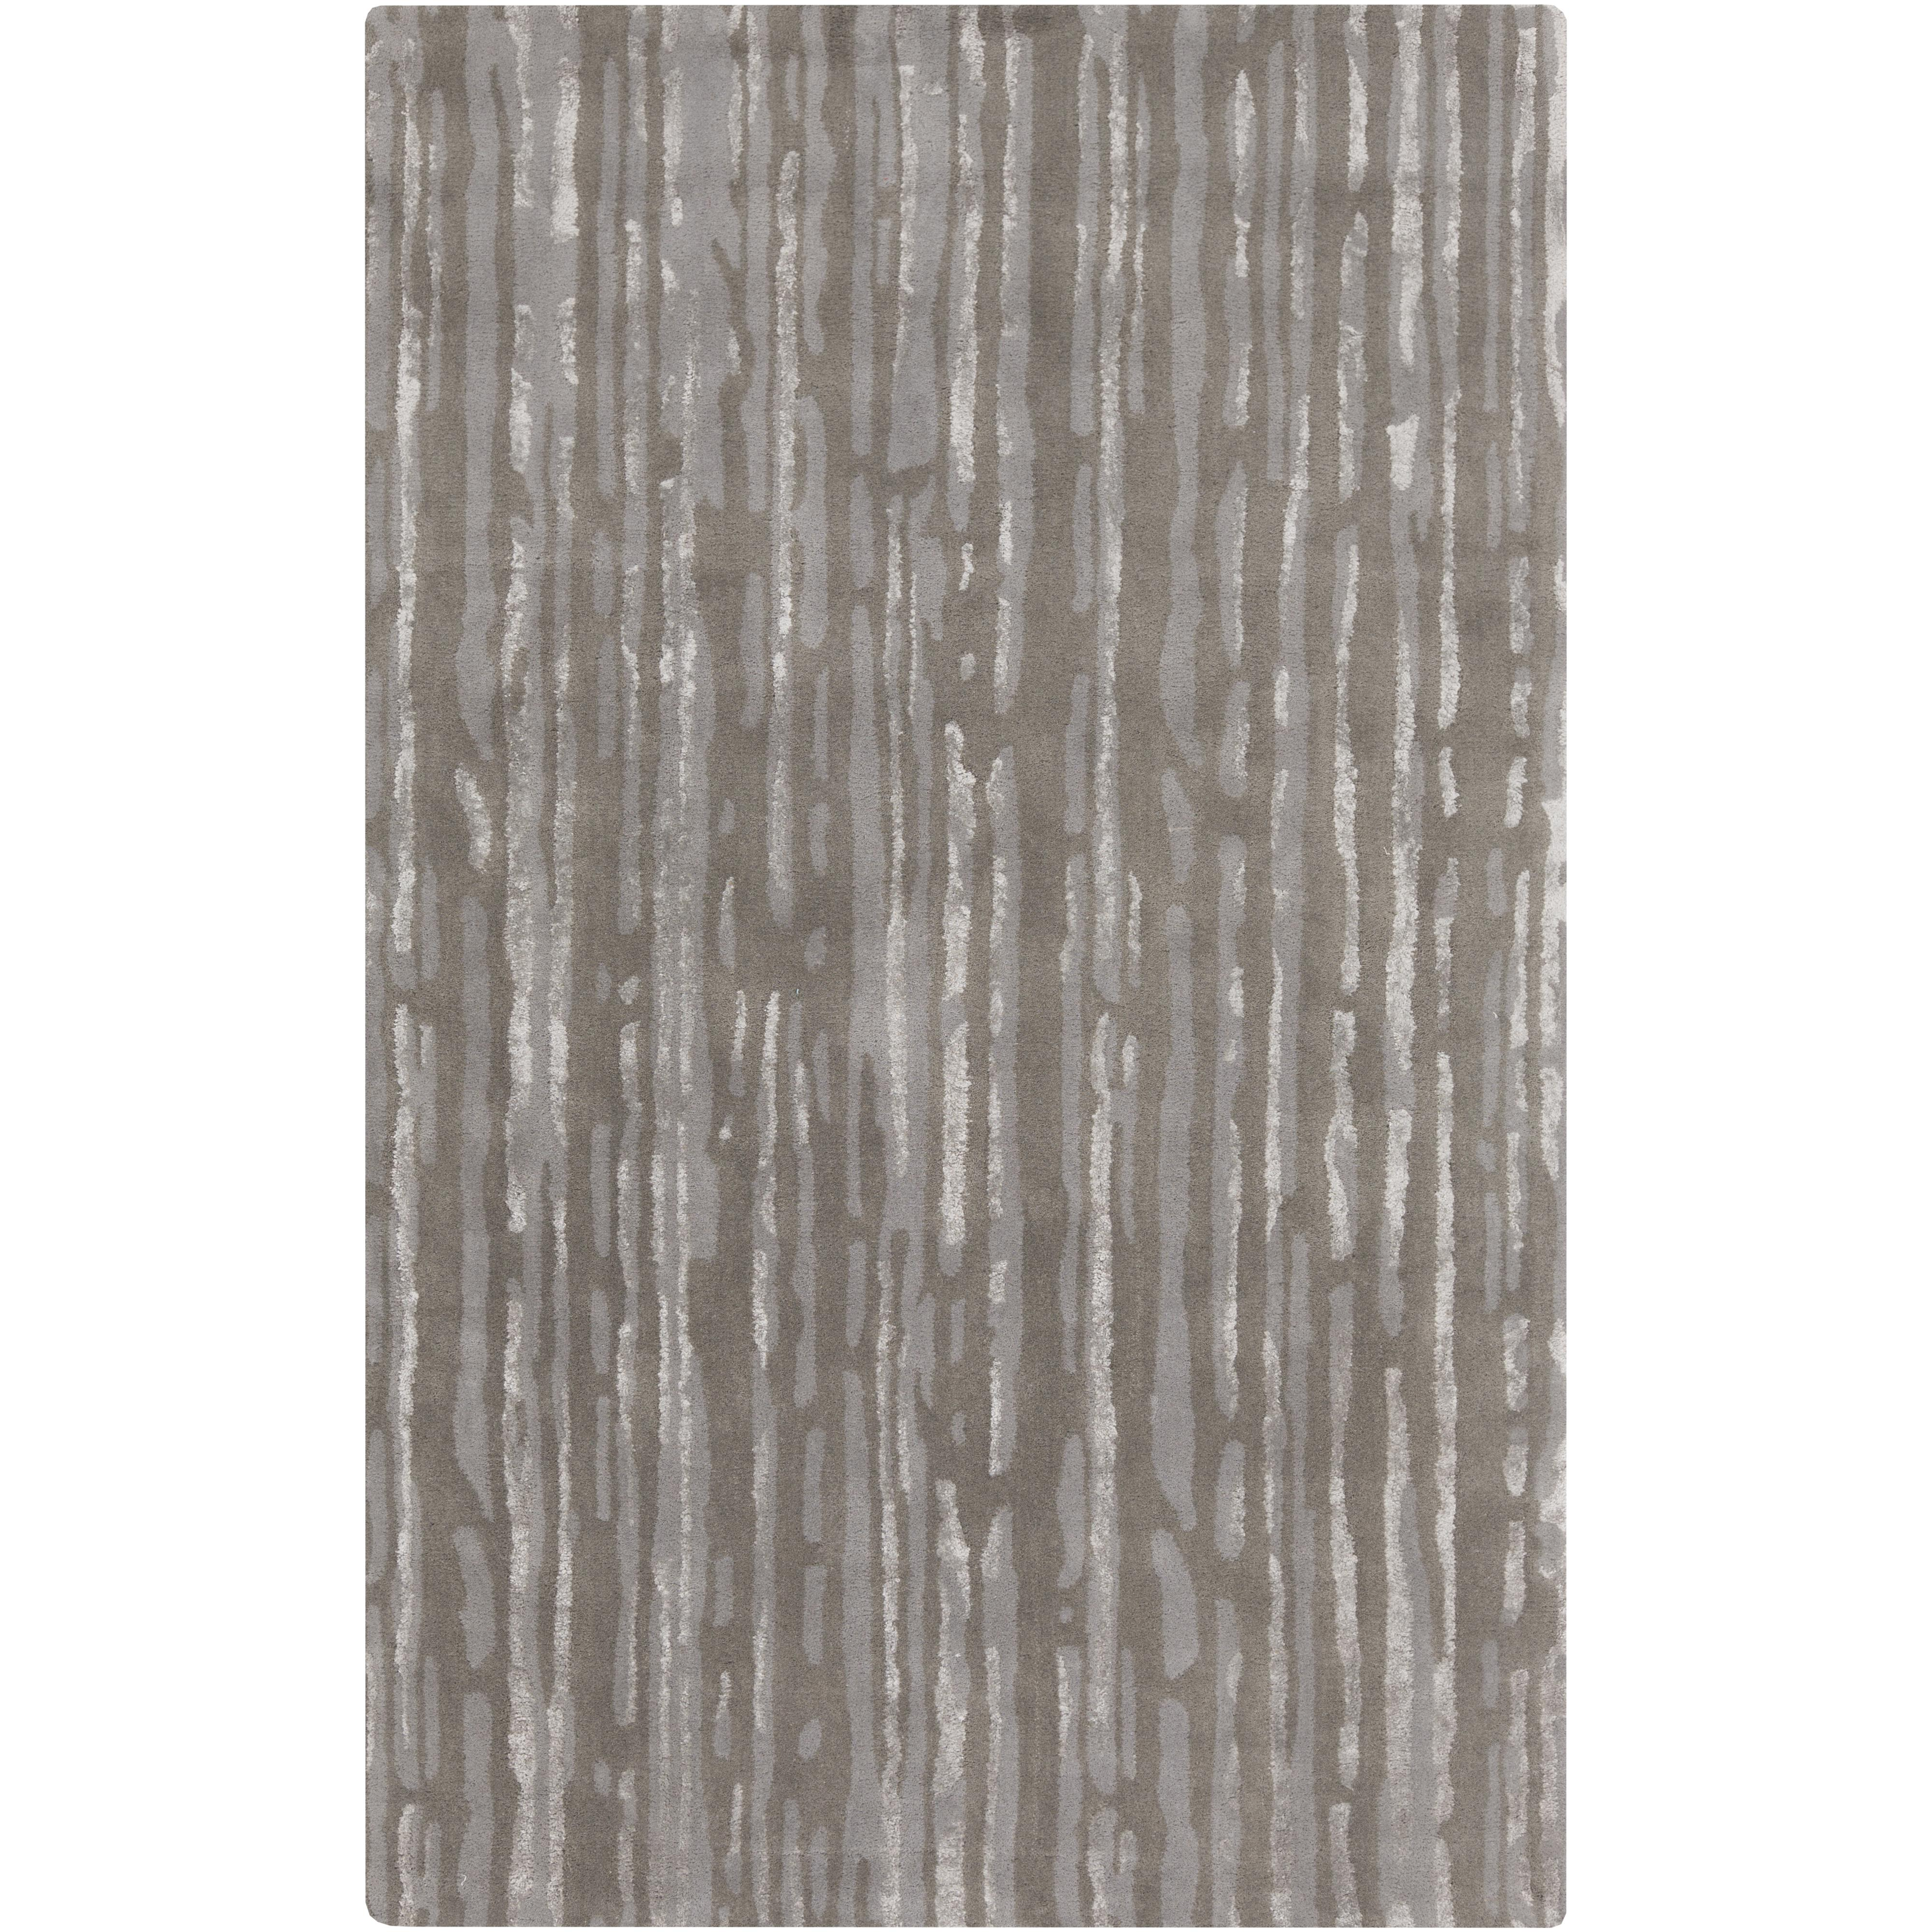 "Surya Modern Classics 3'3"" x 5'3"" - Item Number: CAN2054-3353"